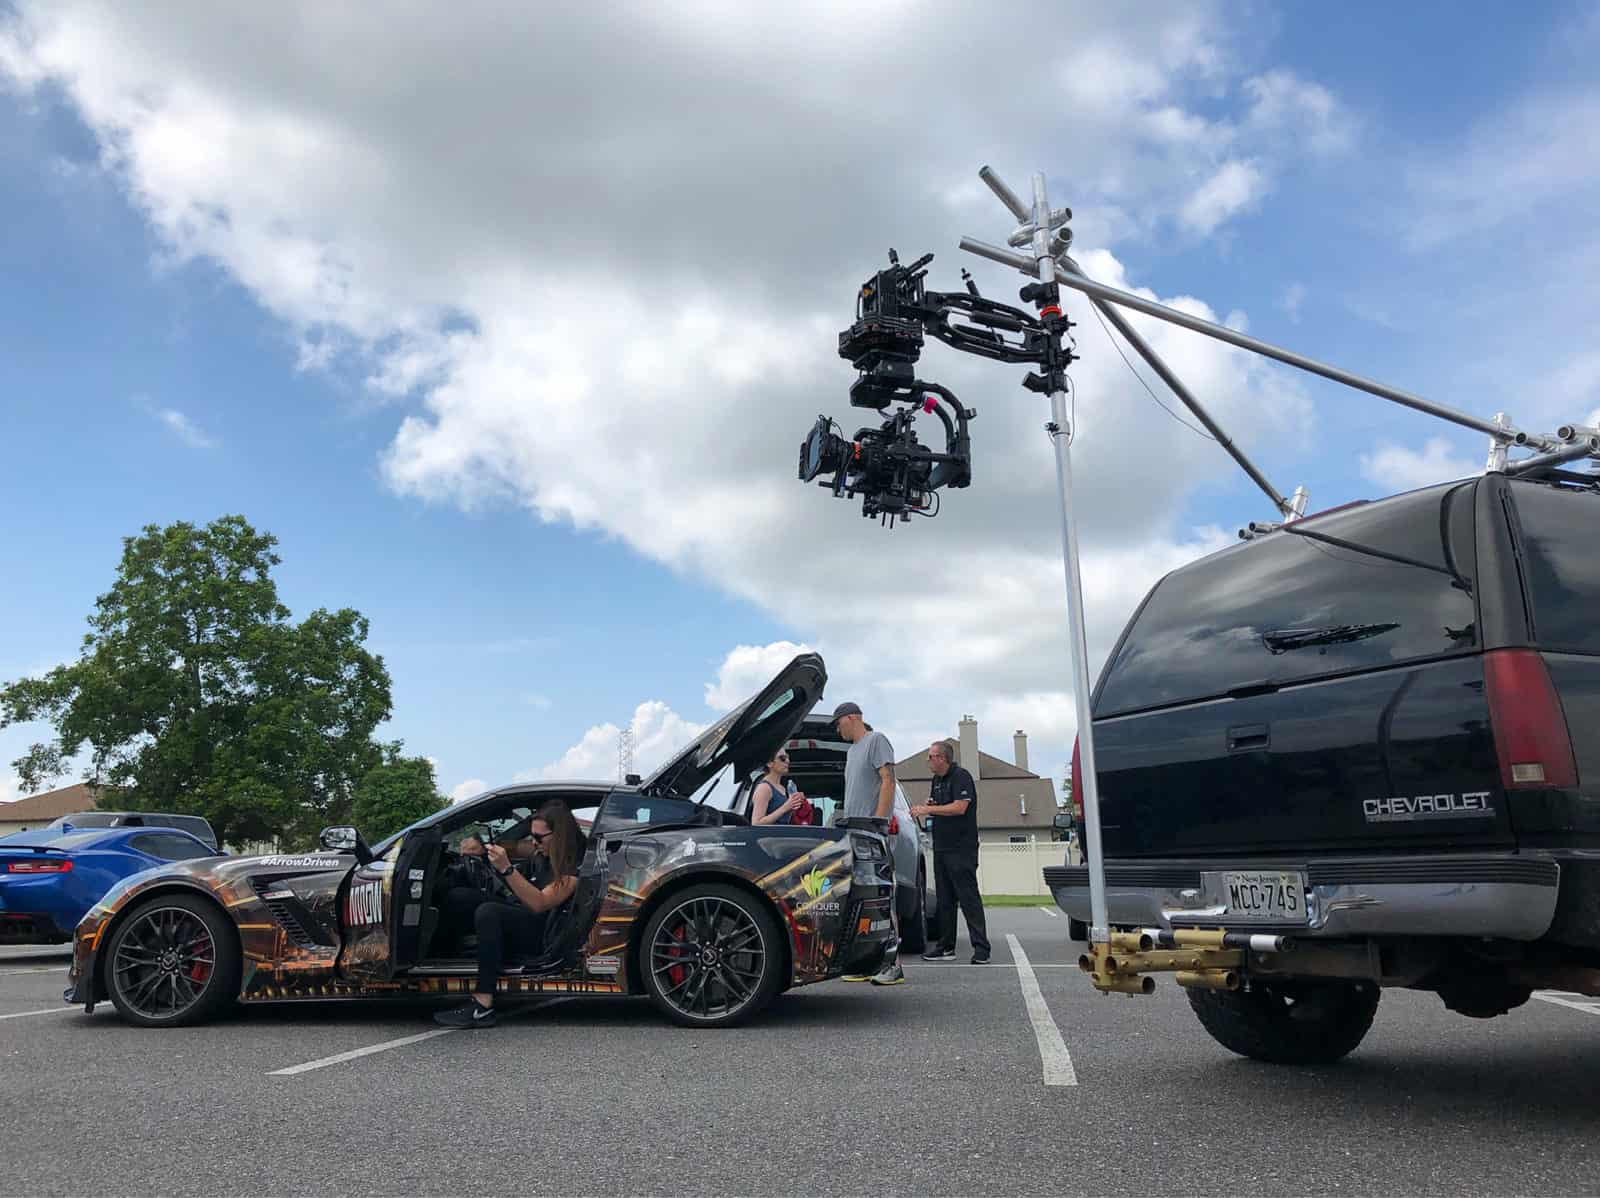 Camera Vehicles